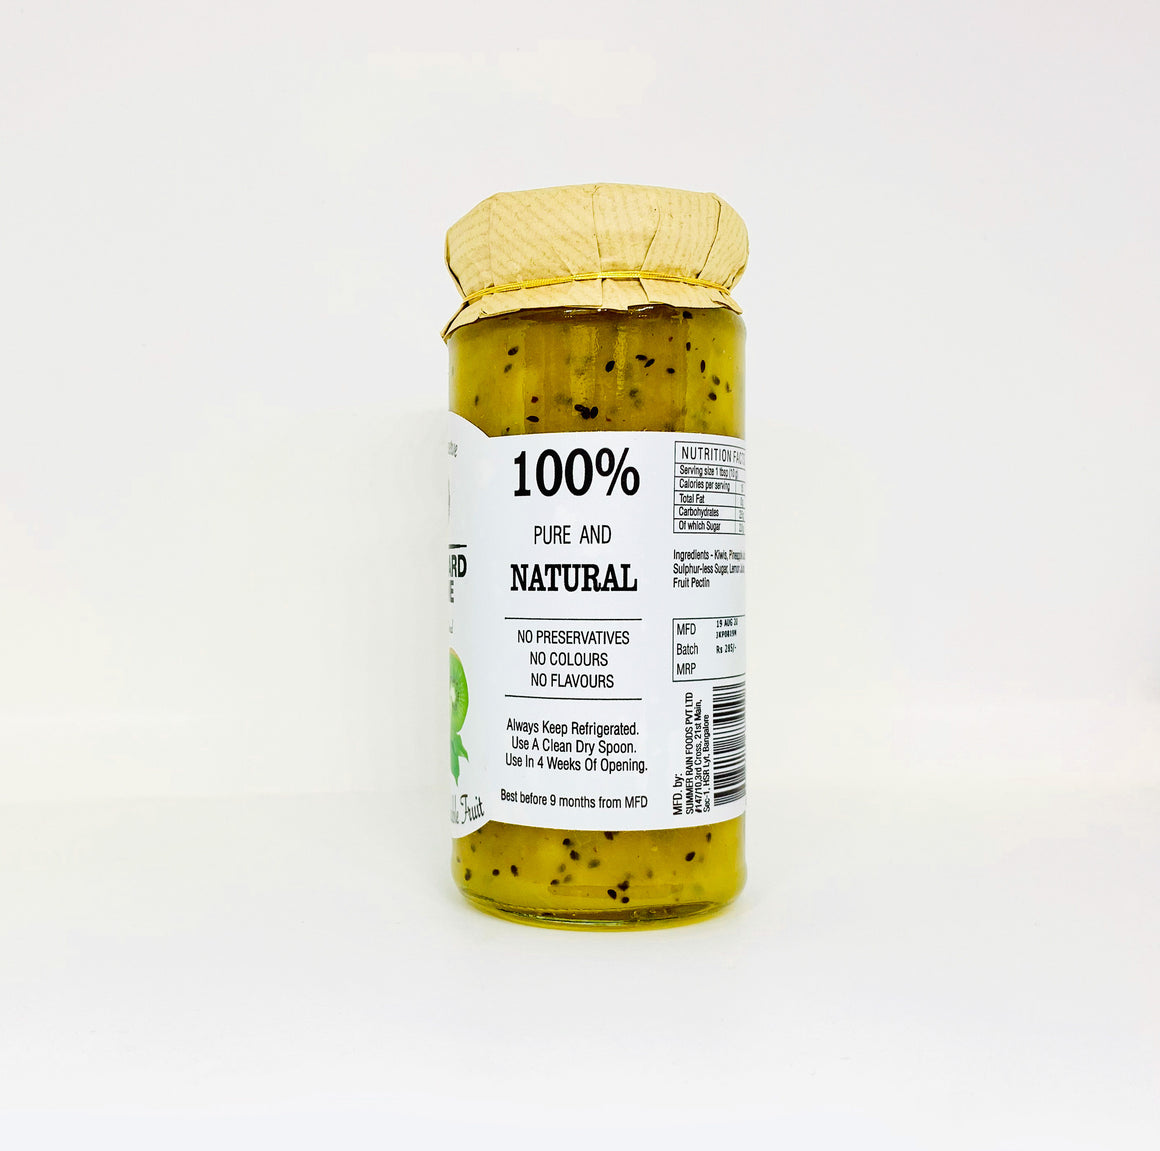 Kiwi Preserve -80% Fruit, No Preservatives, colours or flavours, Low sugar- 280 grams